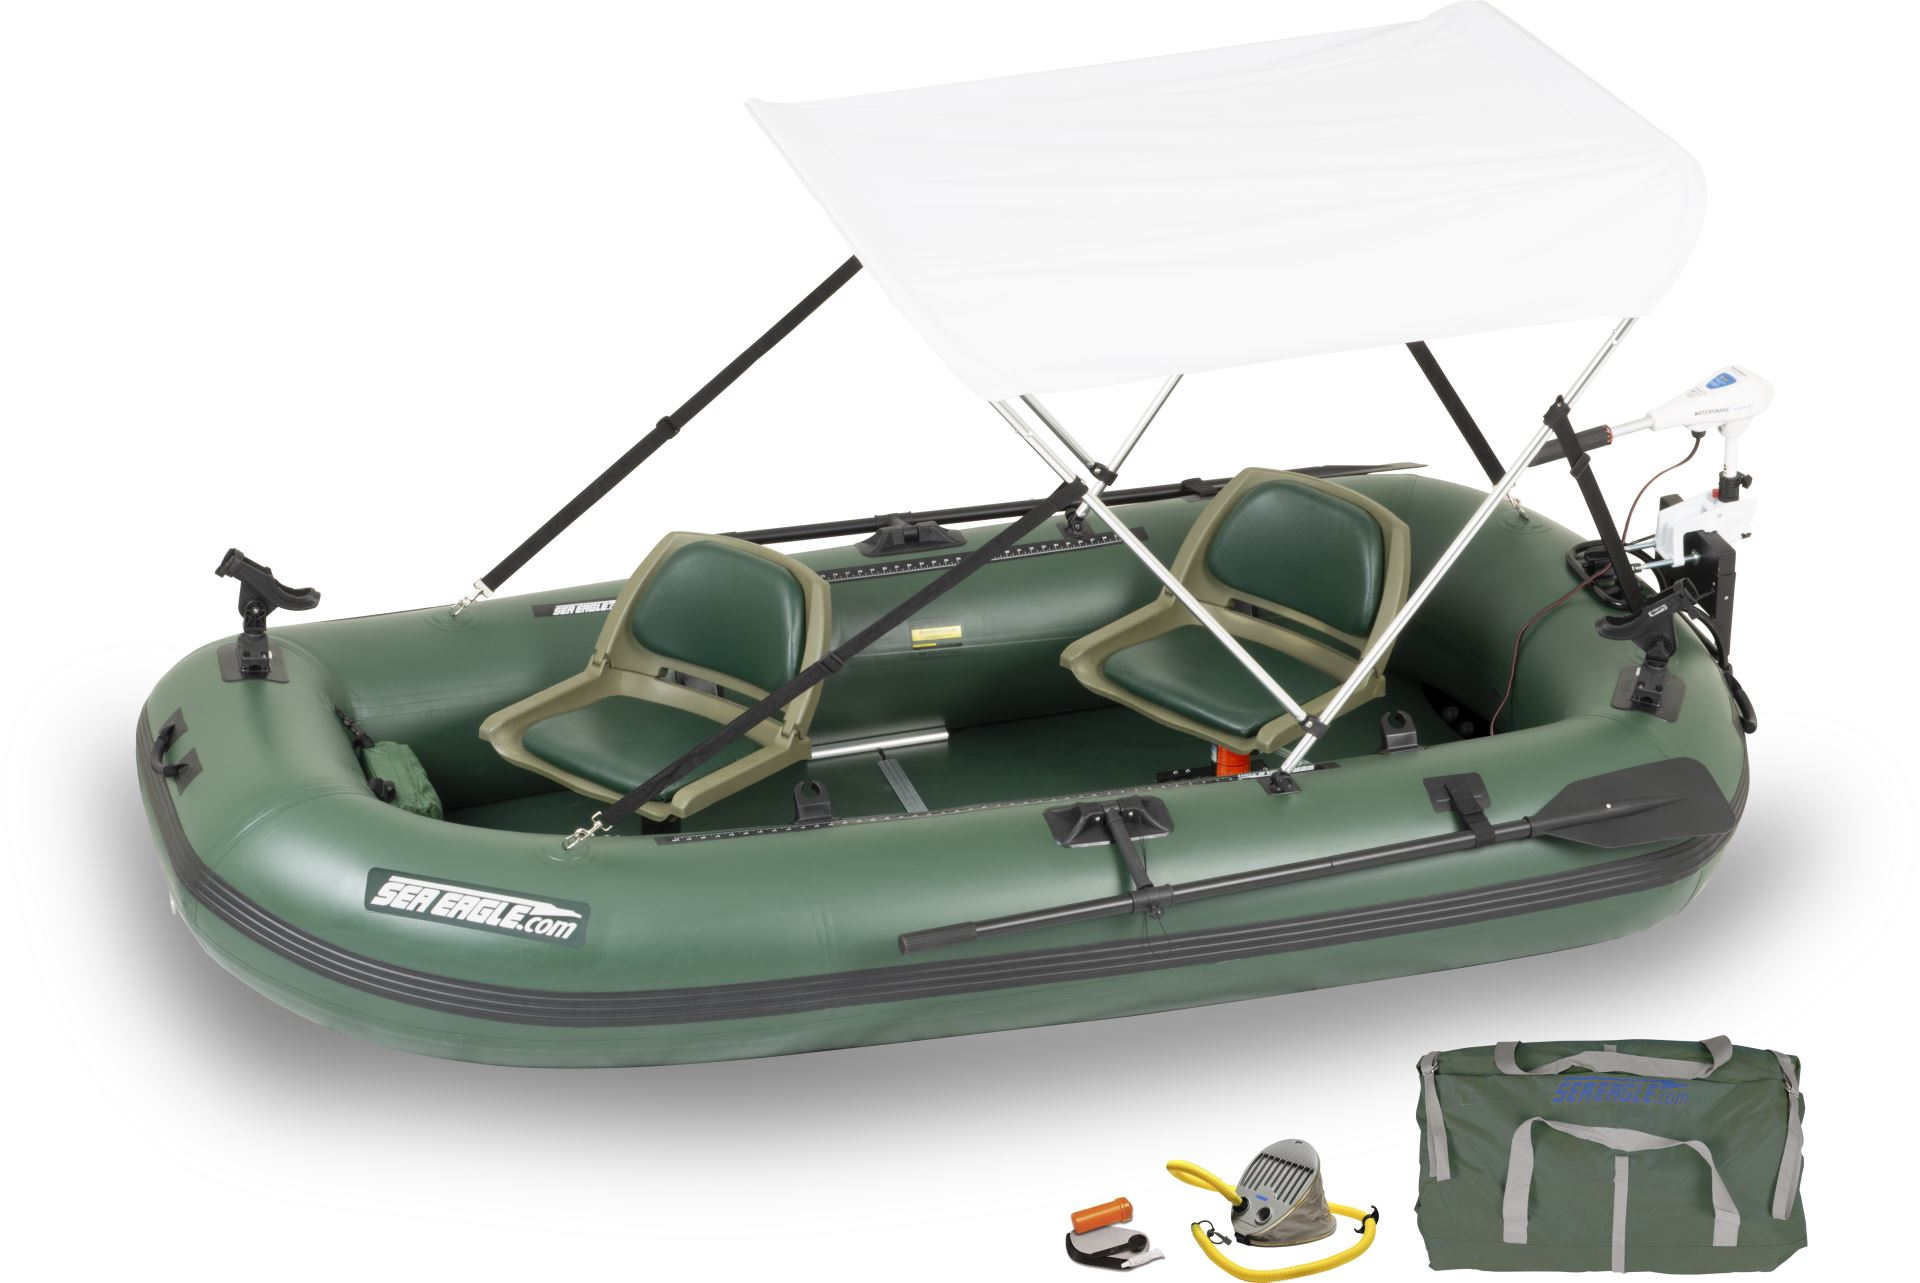 Sea eagle sts10 2 person inflatable fishing boats package for Blow up boat for fishing